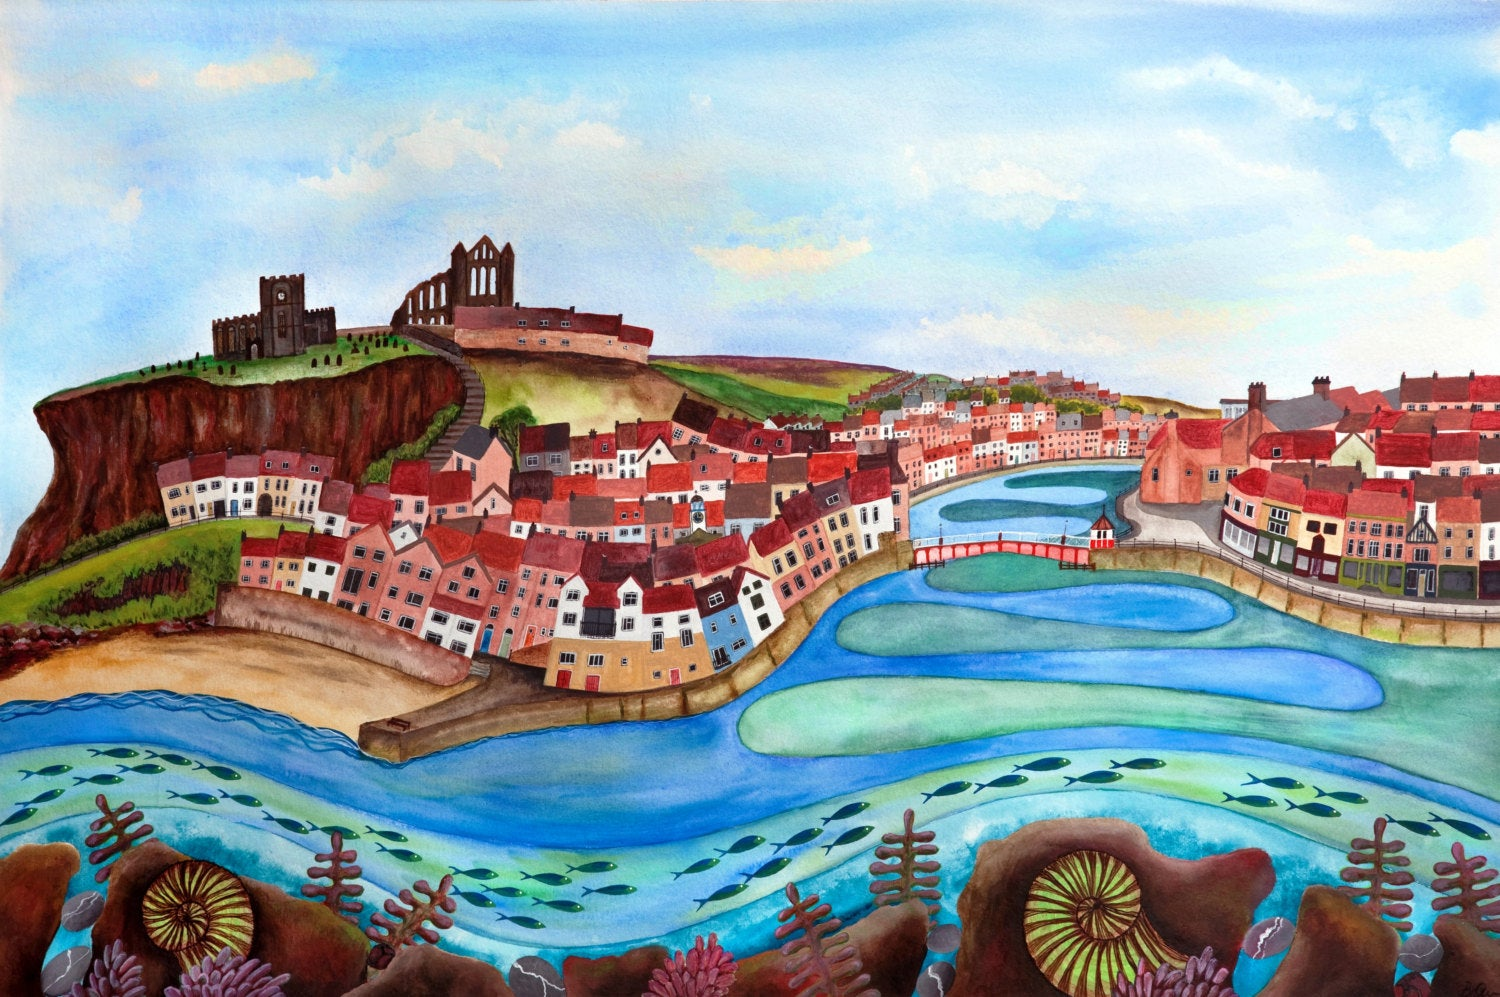 Sitting Pretty - Whitby - Limited Edition Print